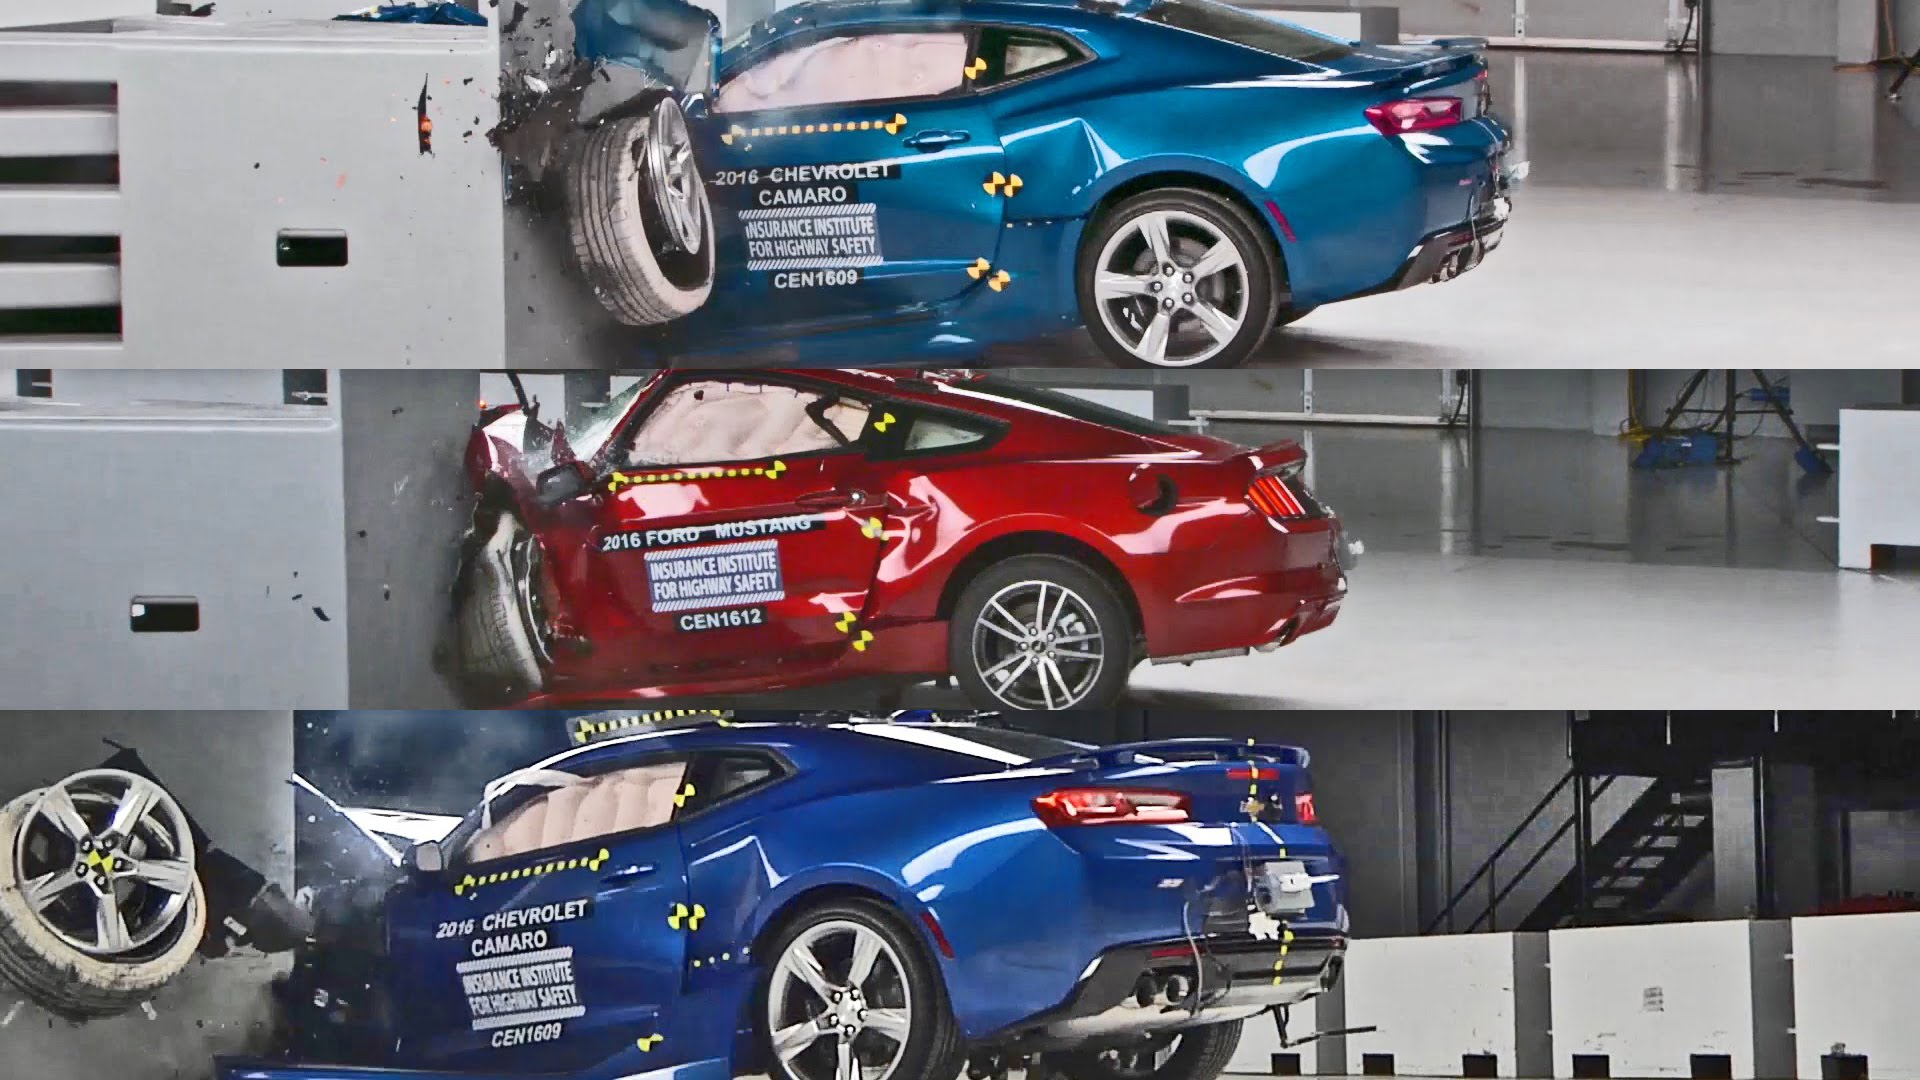 These muscle cars crash tests prove that safety is not a priority ...